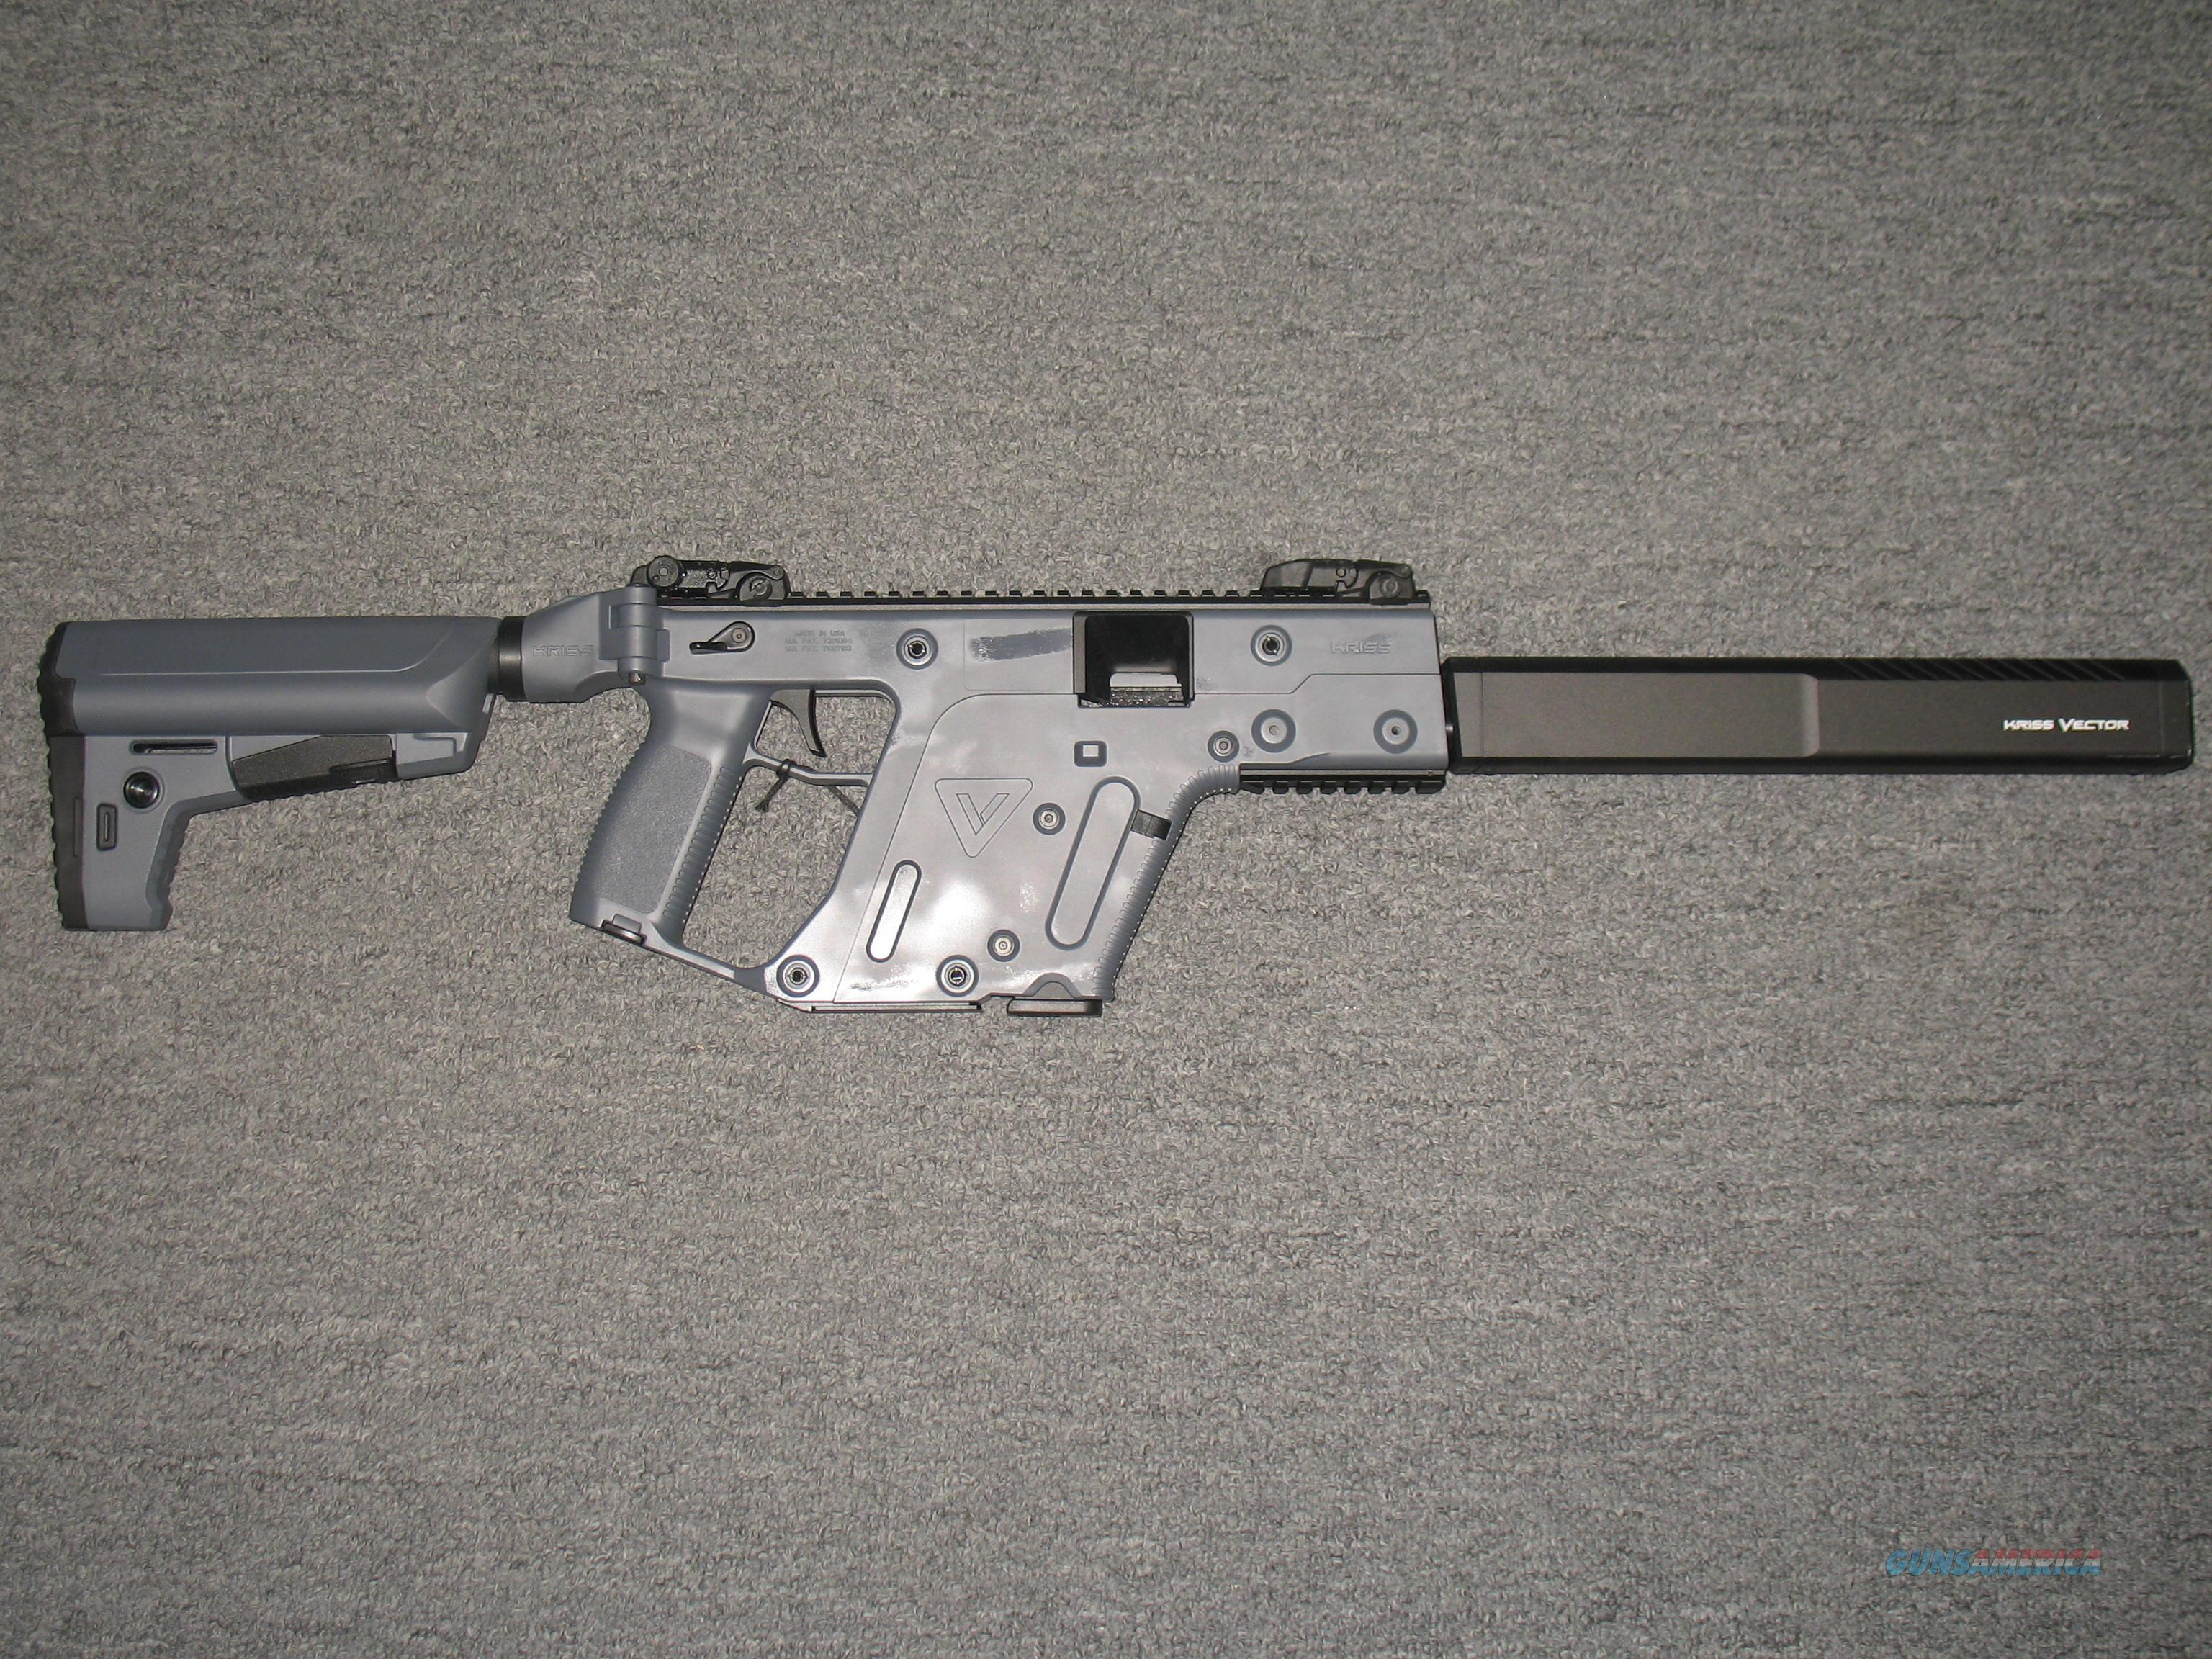 Kriss Vector CRB 9mm (Rifle) Combat Grey Gen 2  Guns > Rifles > Kriss Tactical Rifles